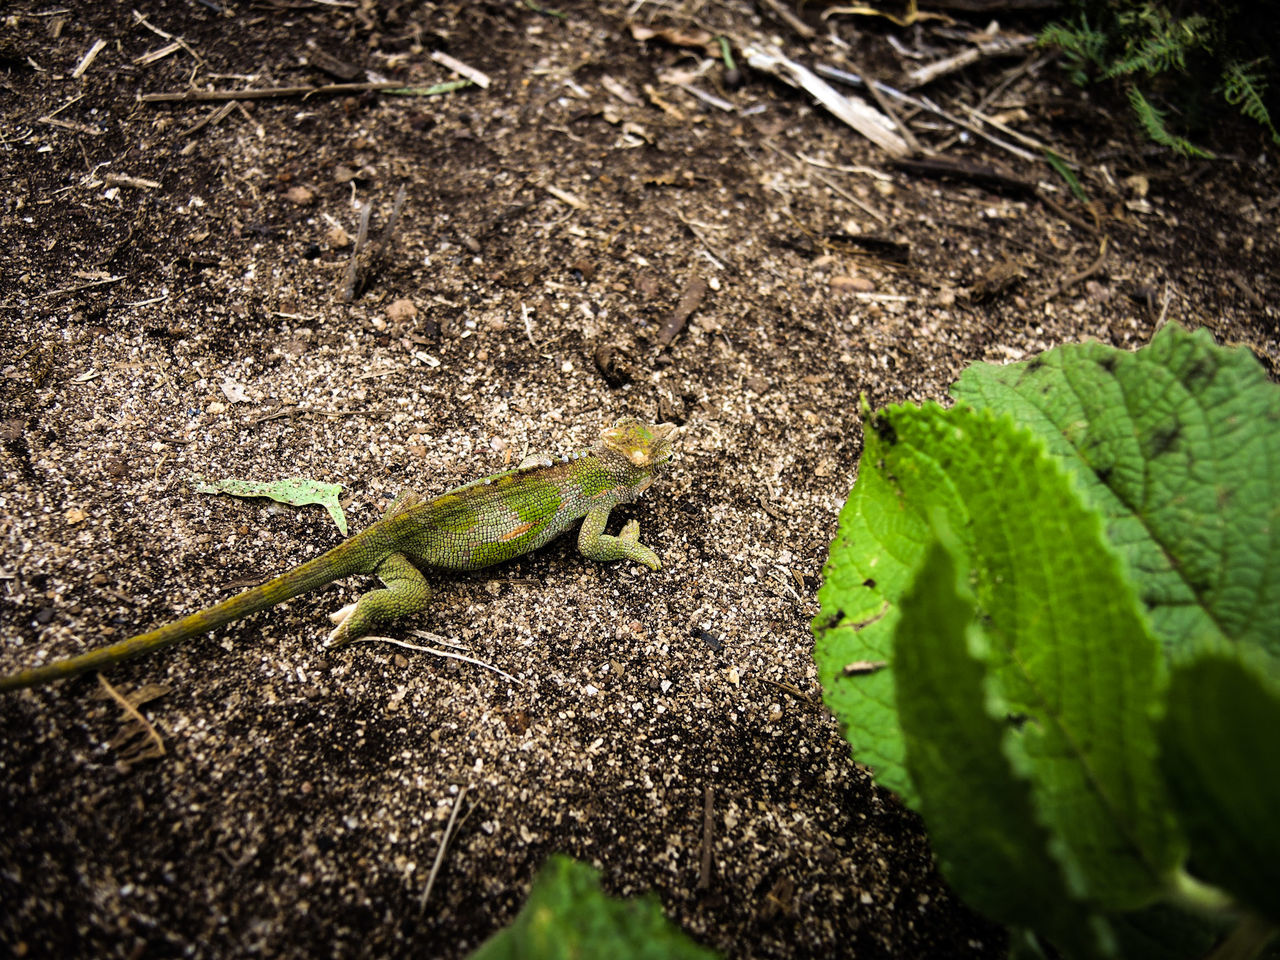 Animal Themes Animal Wildlife Animals In The Wild Chameleon Close-up Day Full Length Green Color Iguana Landscape Leaf Lesotho Nature Nature Nature_collection Naturelovers No People One Animal Outdoor Outdoor Photography Outdoors Outside Reptile Usambara UsambaraMountains